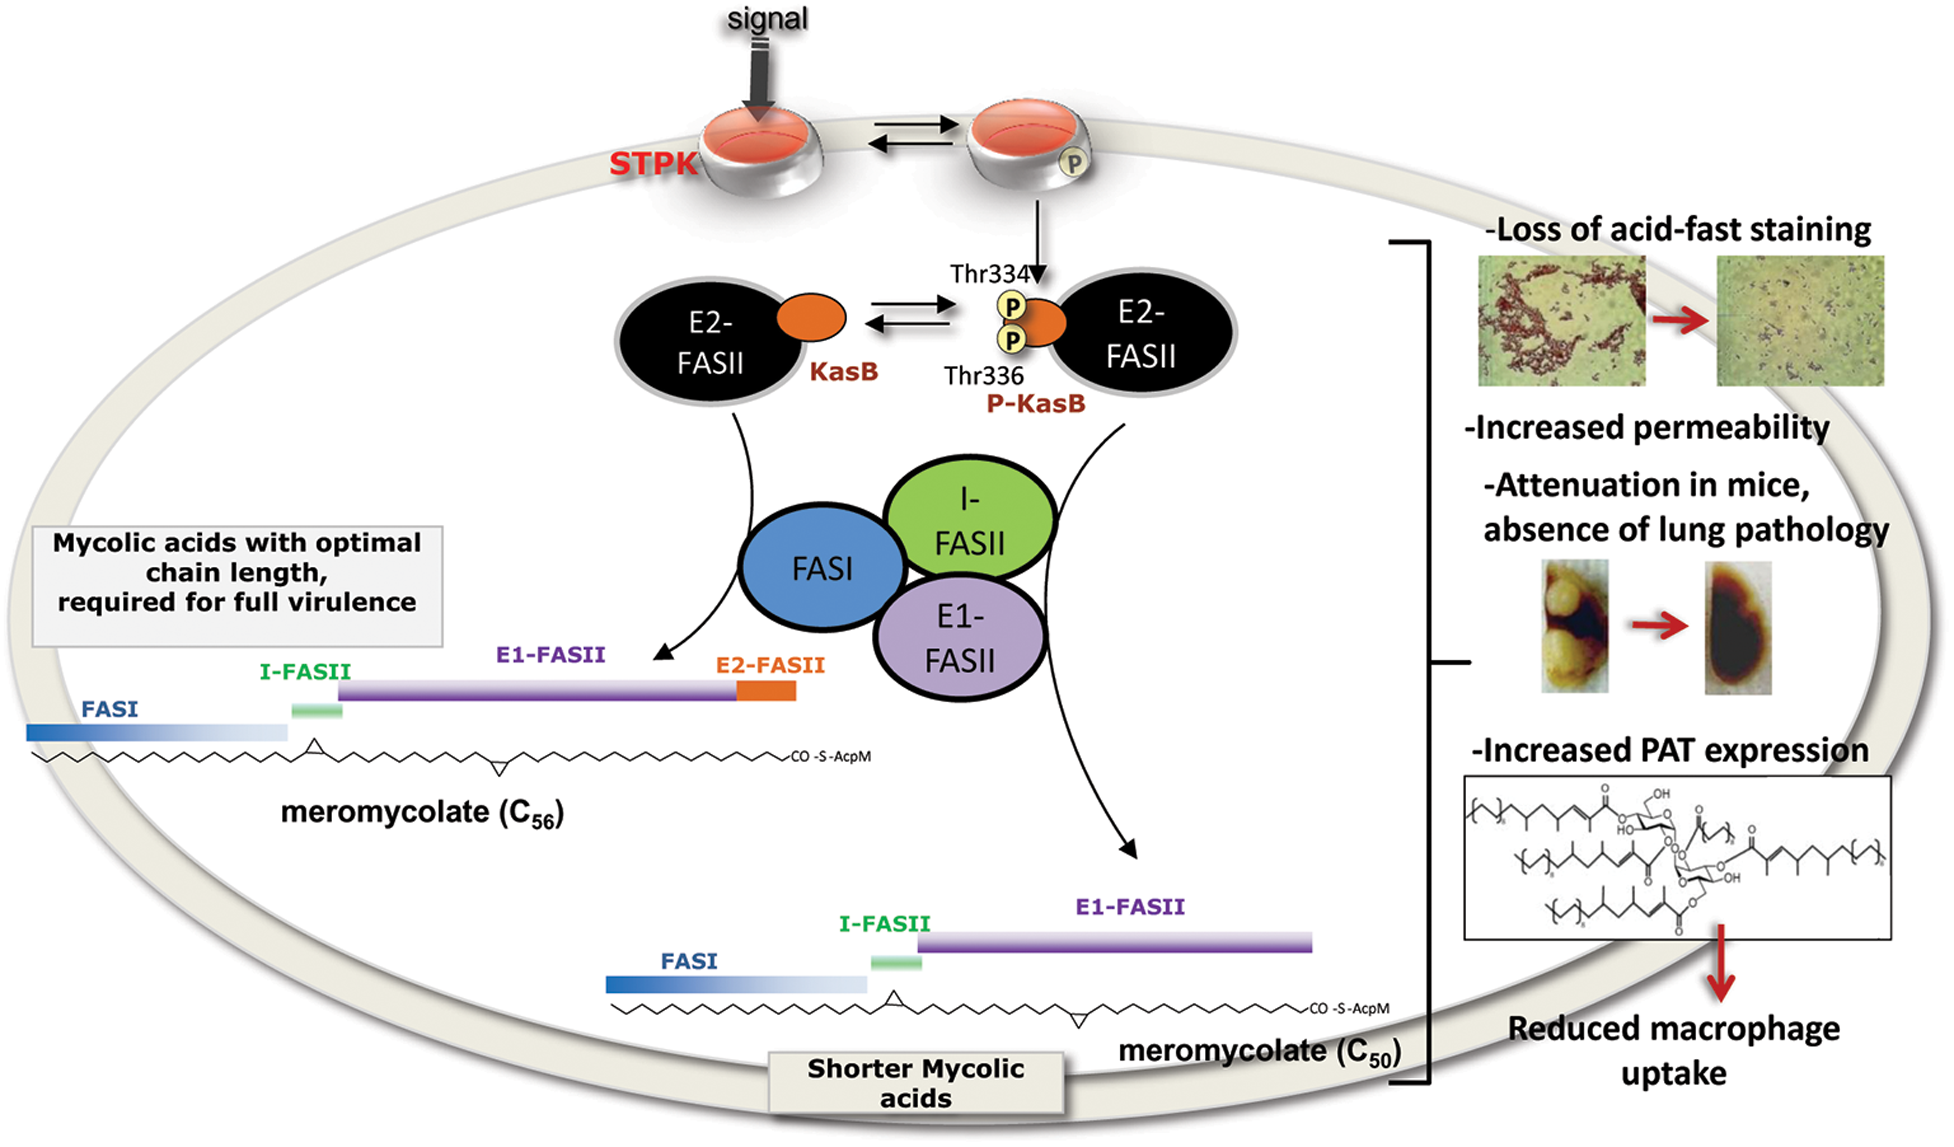 Representation of the <i>in vivo</i> consequences of STPK-dependent phosphorylation of KasB.